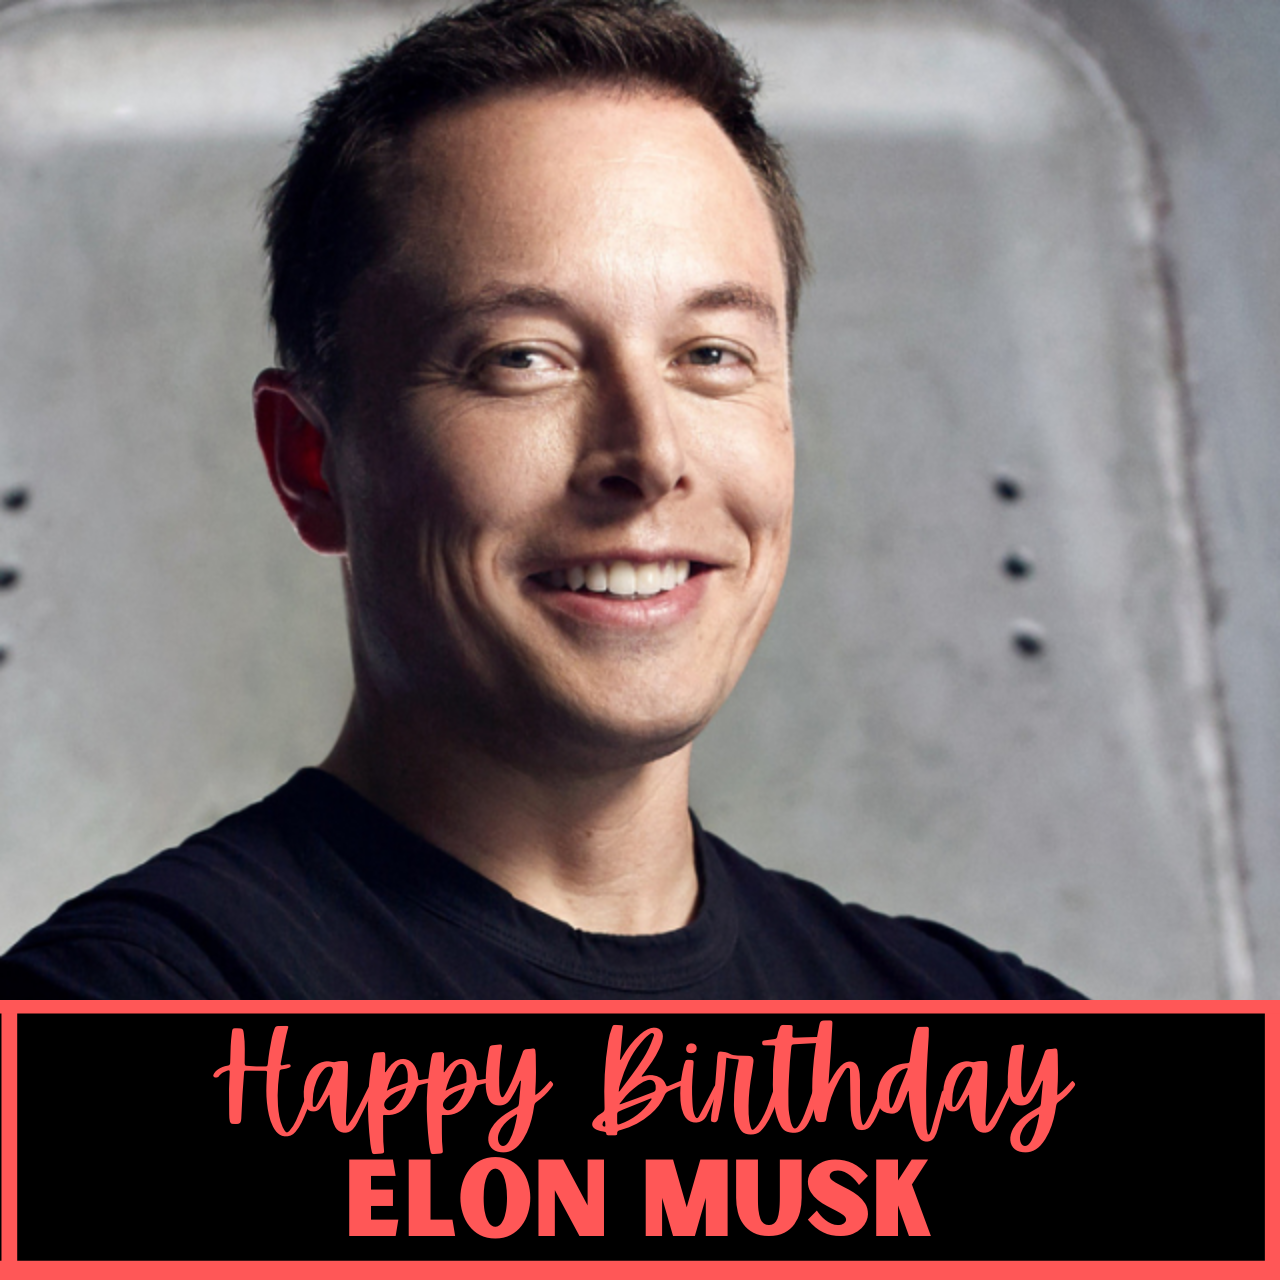 Happy Birthday Elon Musk: Wishes, Tweets, Messages, Greetings, and WhatsApp Status Video Download